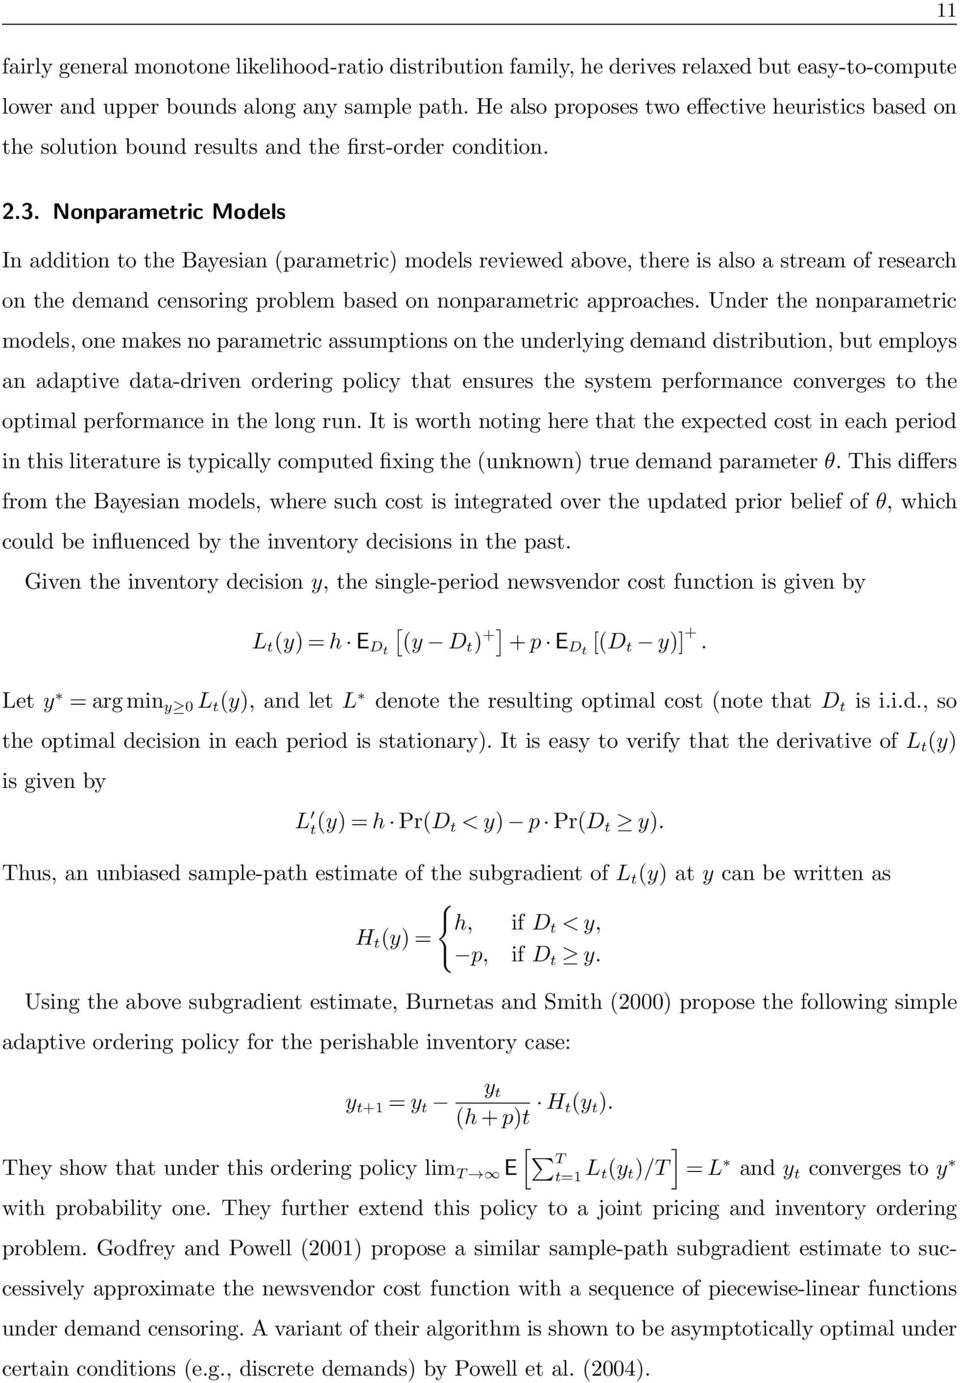 Nonparametric Models In addition to the Bayesian (parametric) models reviewed above, there is also a stream of research on the demand censoring problem based on nonparametric approaches.